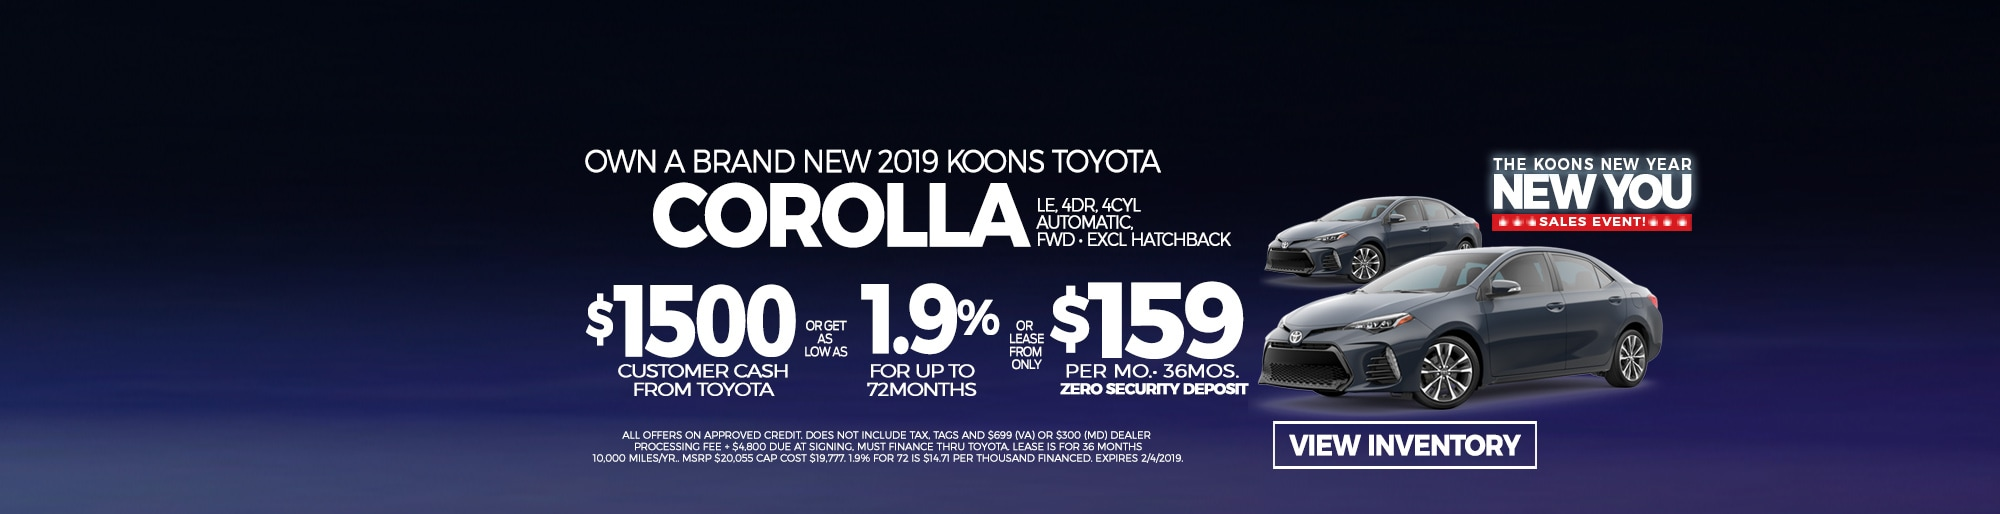 Koons Arlington Toyota Toyota Dealership In Arlington Serving Virginia